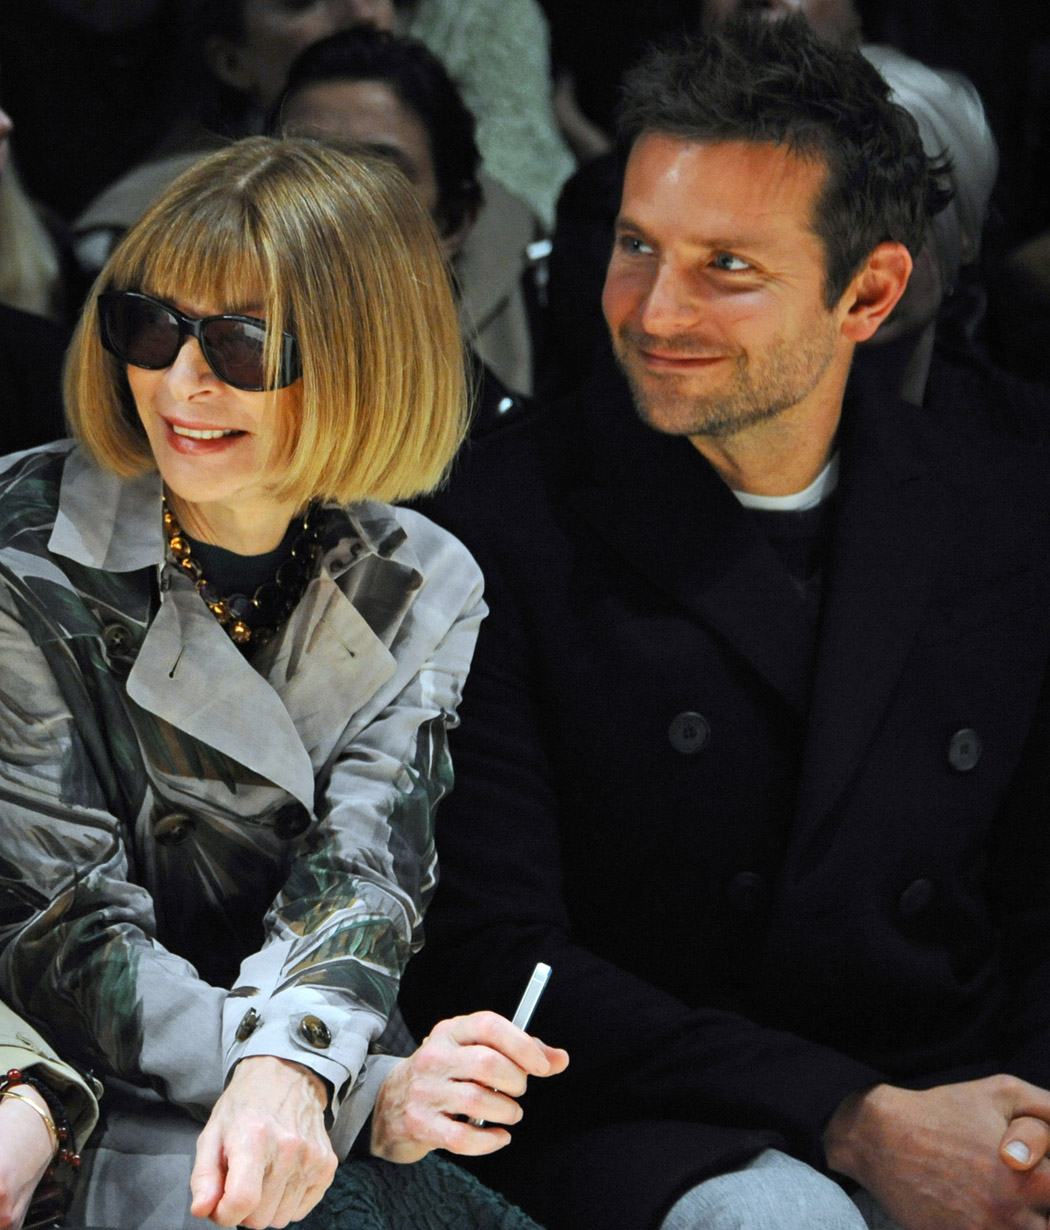 Burberry Womenswear Autumn/Winter 2014 - Front Row & Show